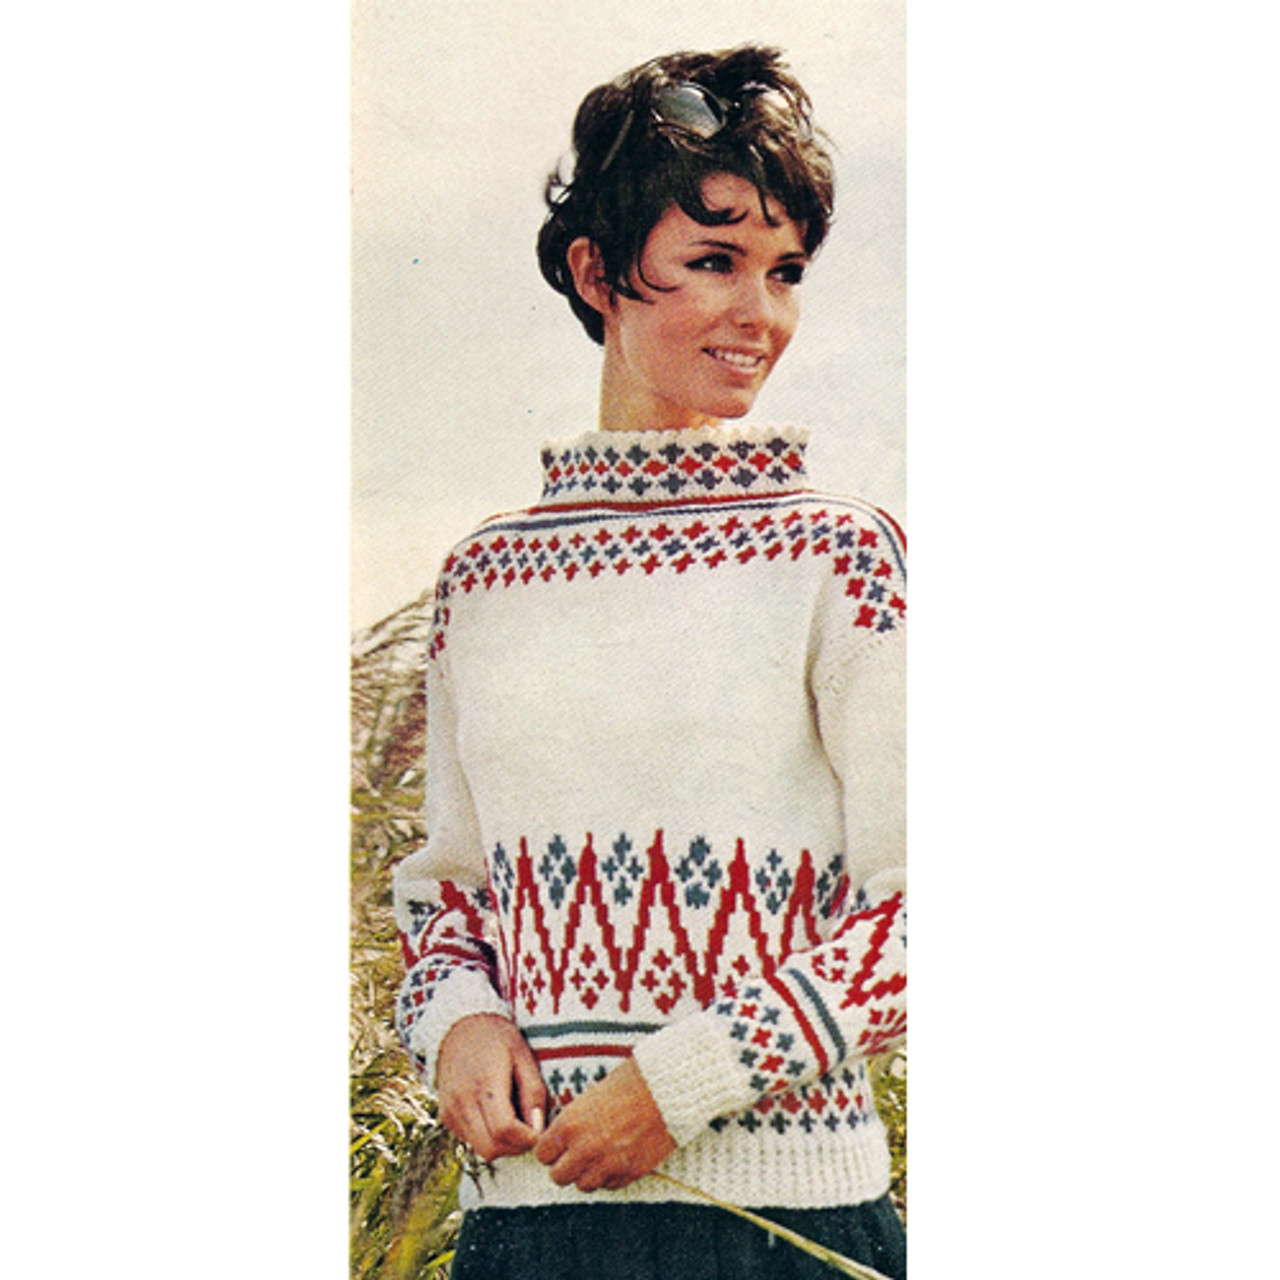 Patterned Sea Breeze Knitted Sweater Pattern in